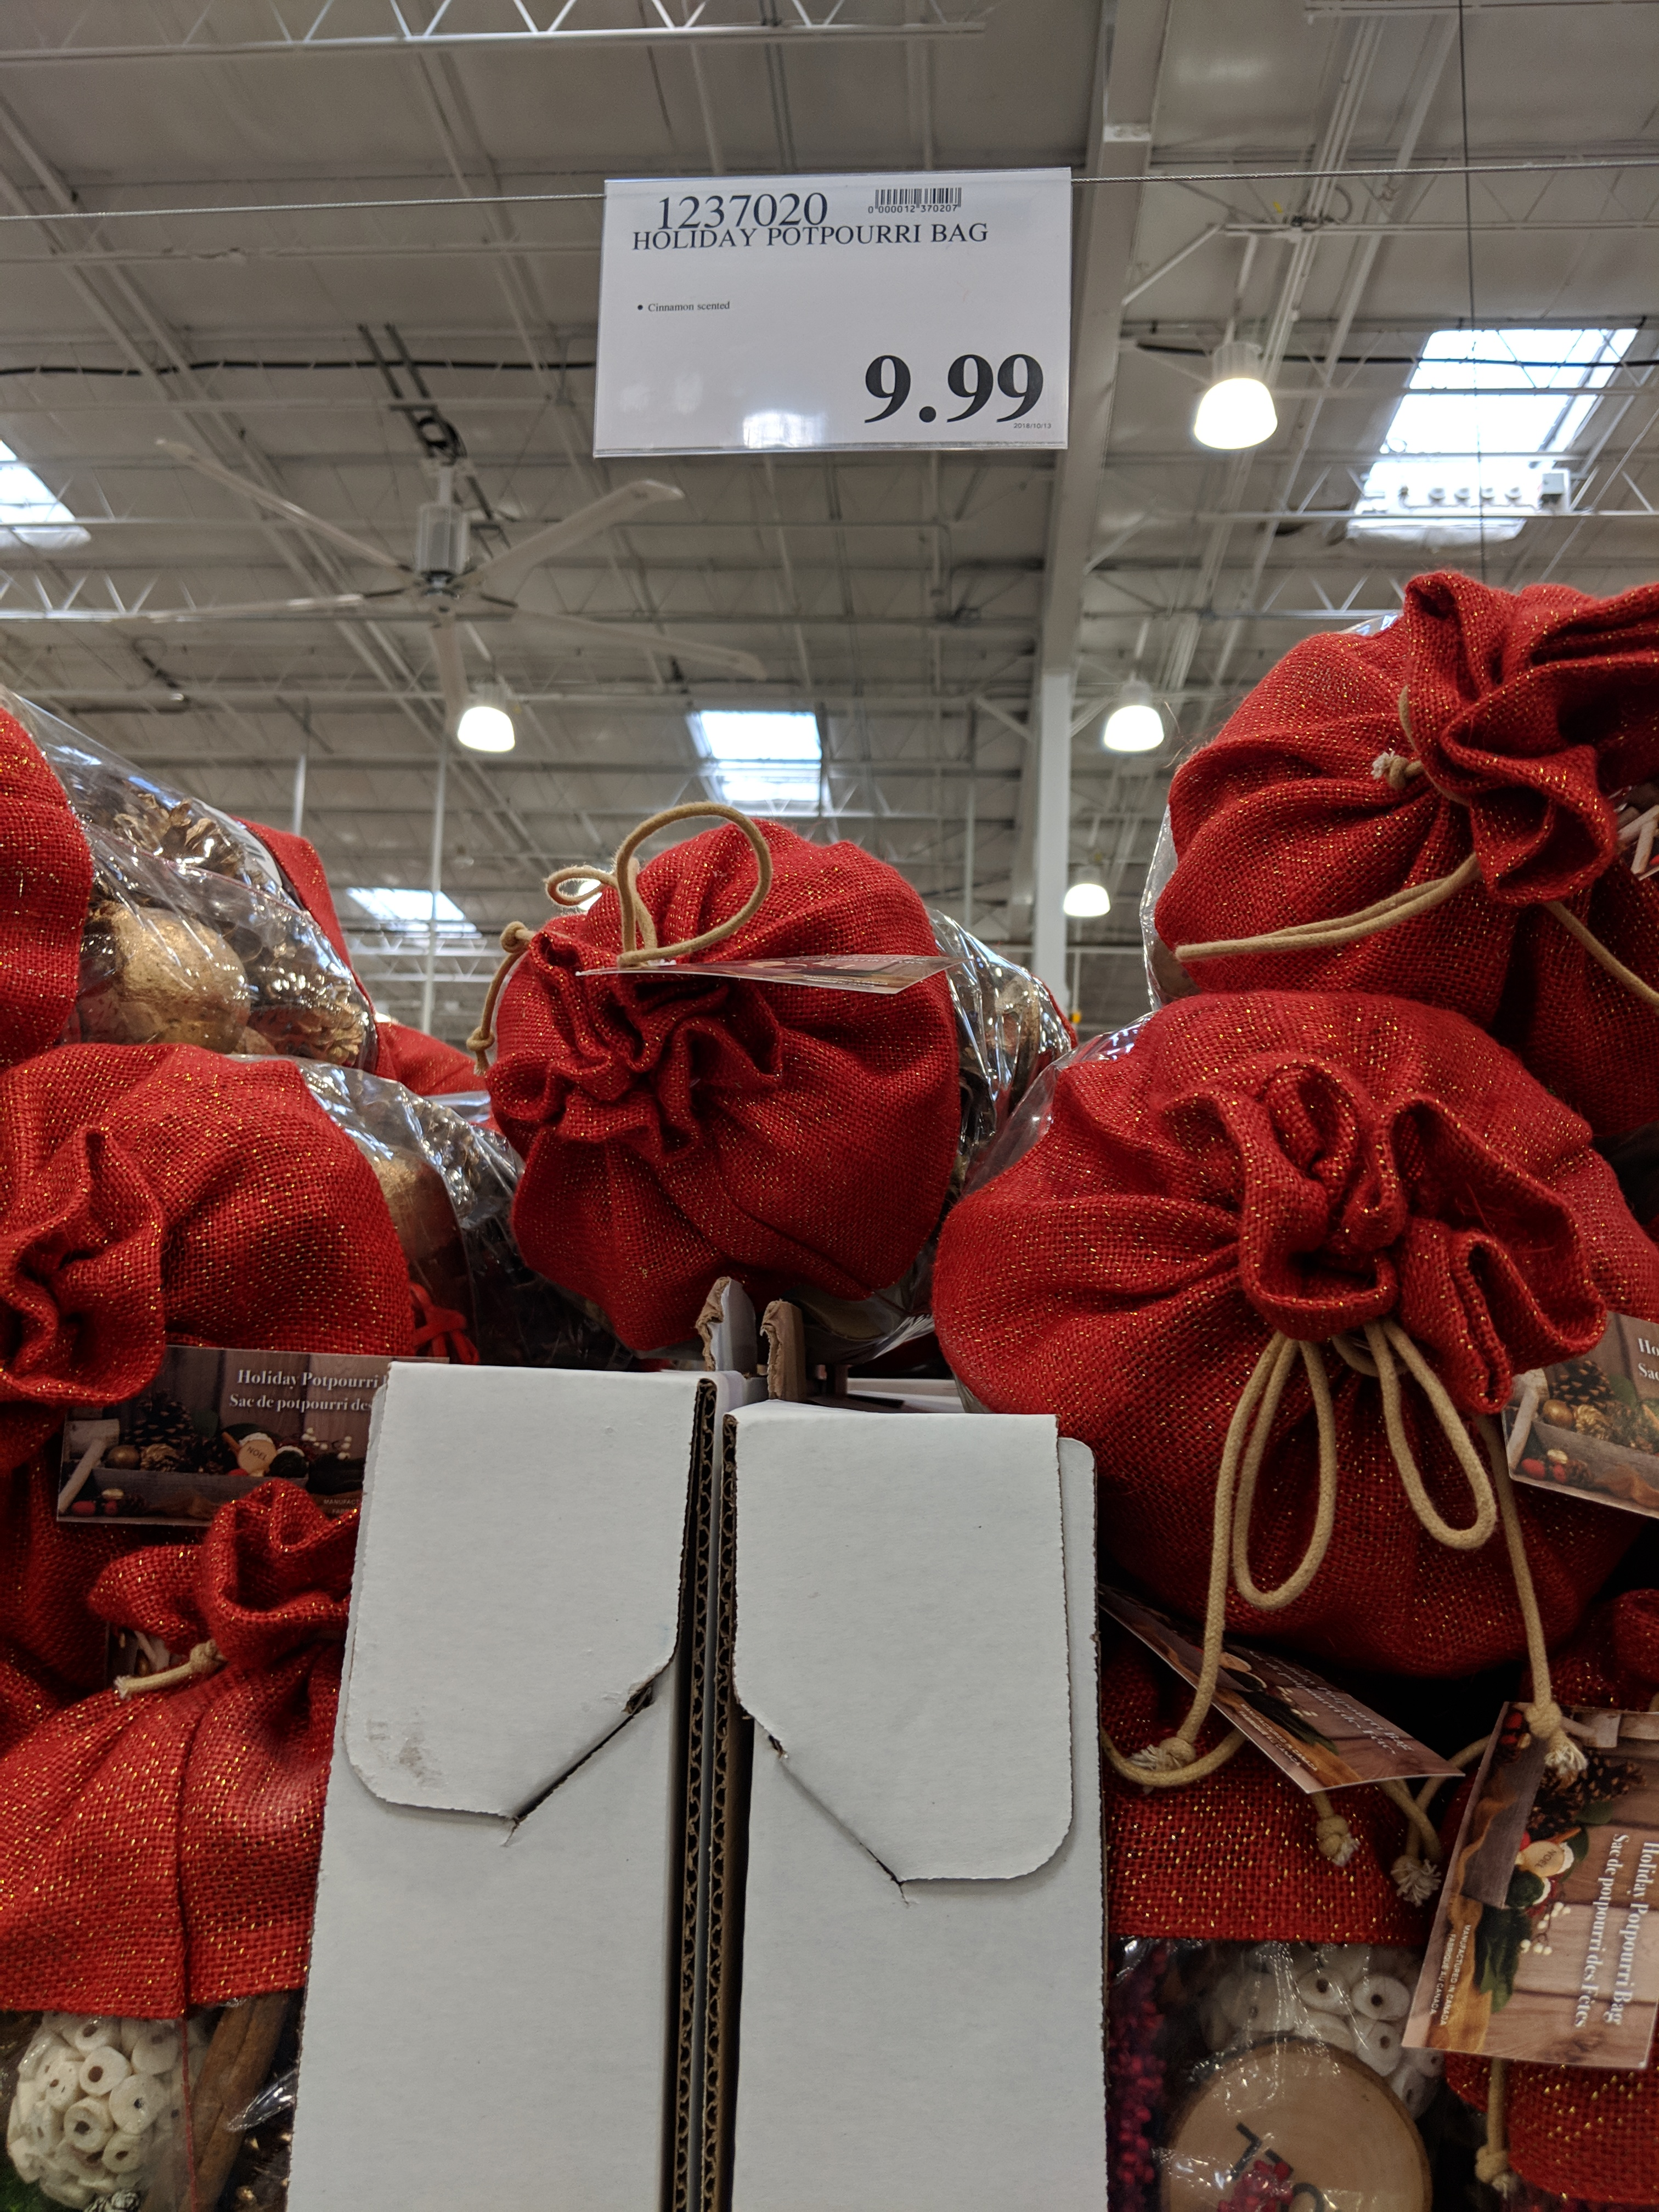 costco holiday decorations and more